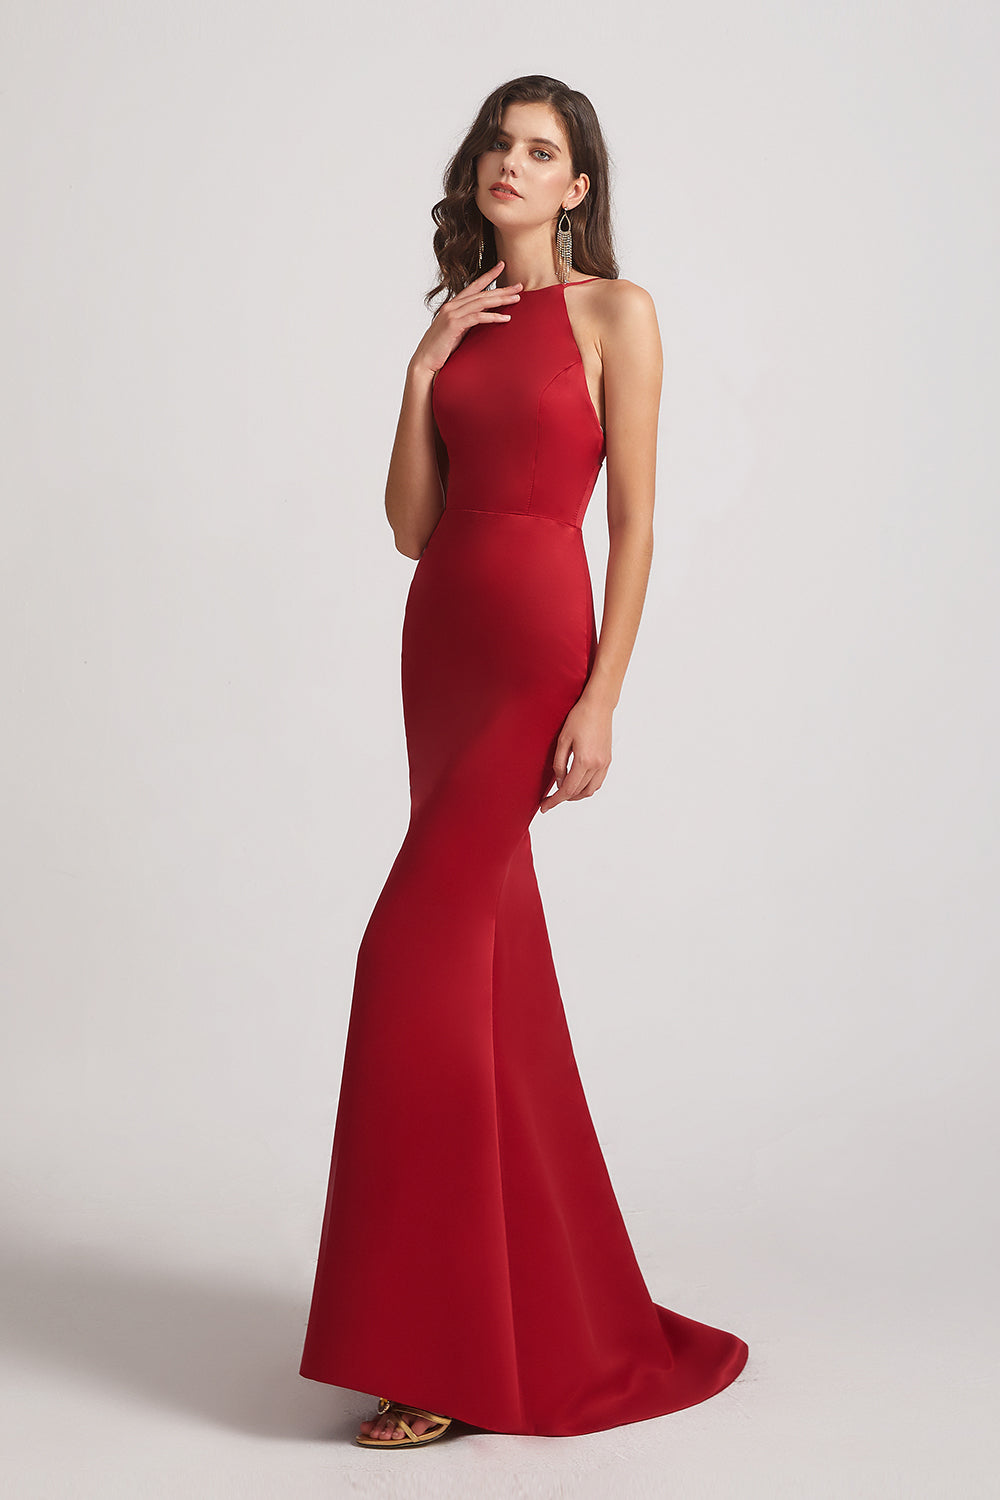 Elegant Trumpet Bridesmaid Dresses